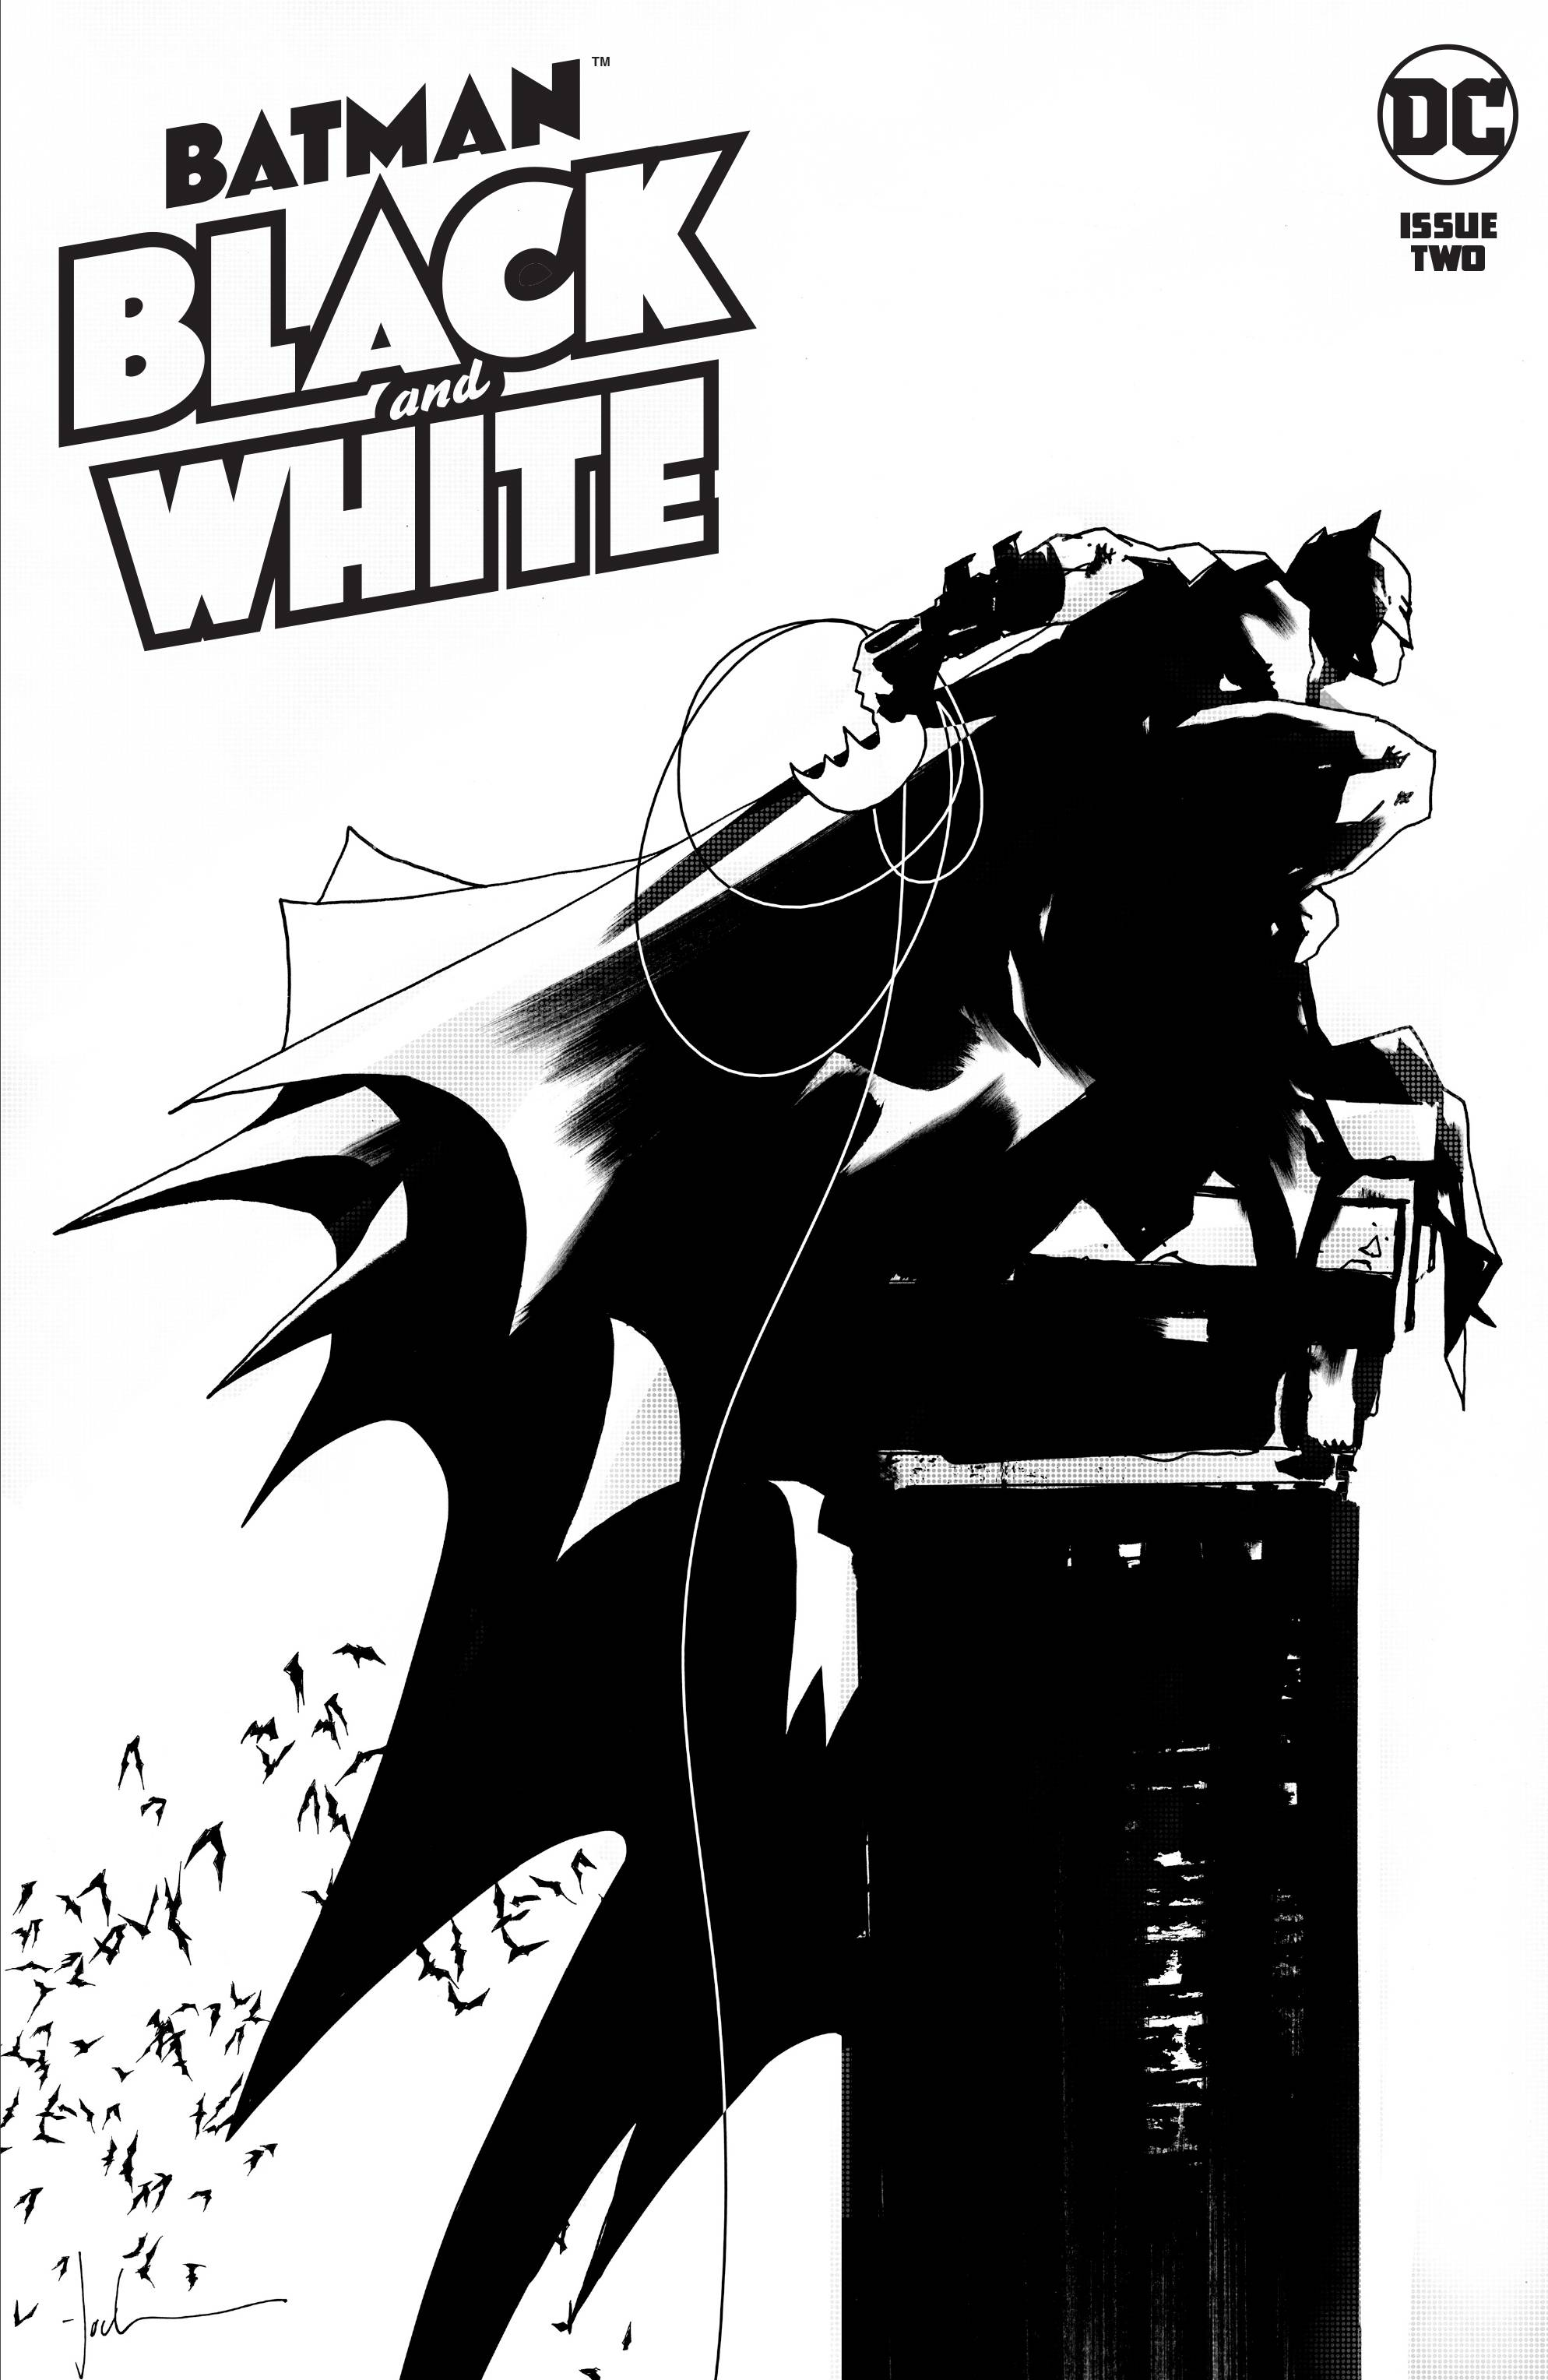 BATMAN BLACK & WHITE #2 (OF 6)